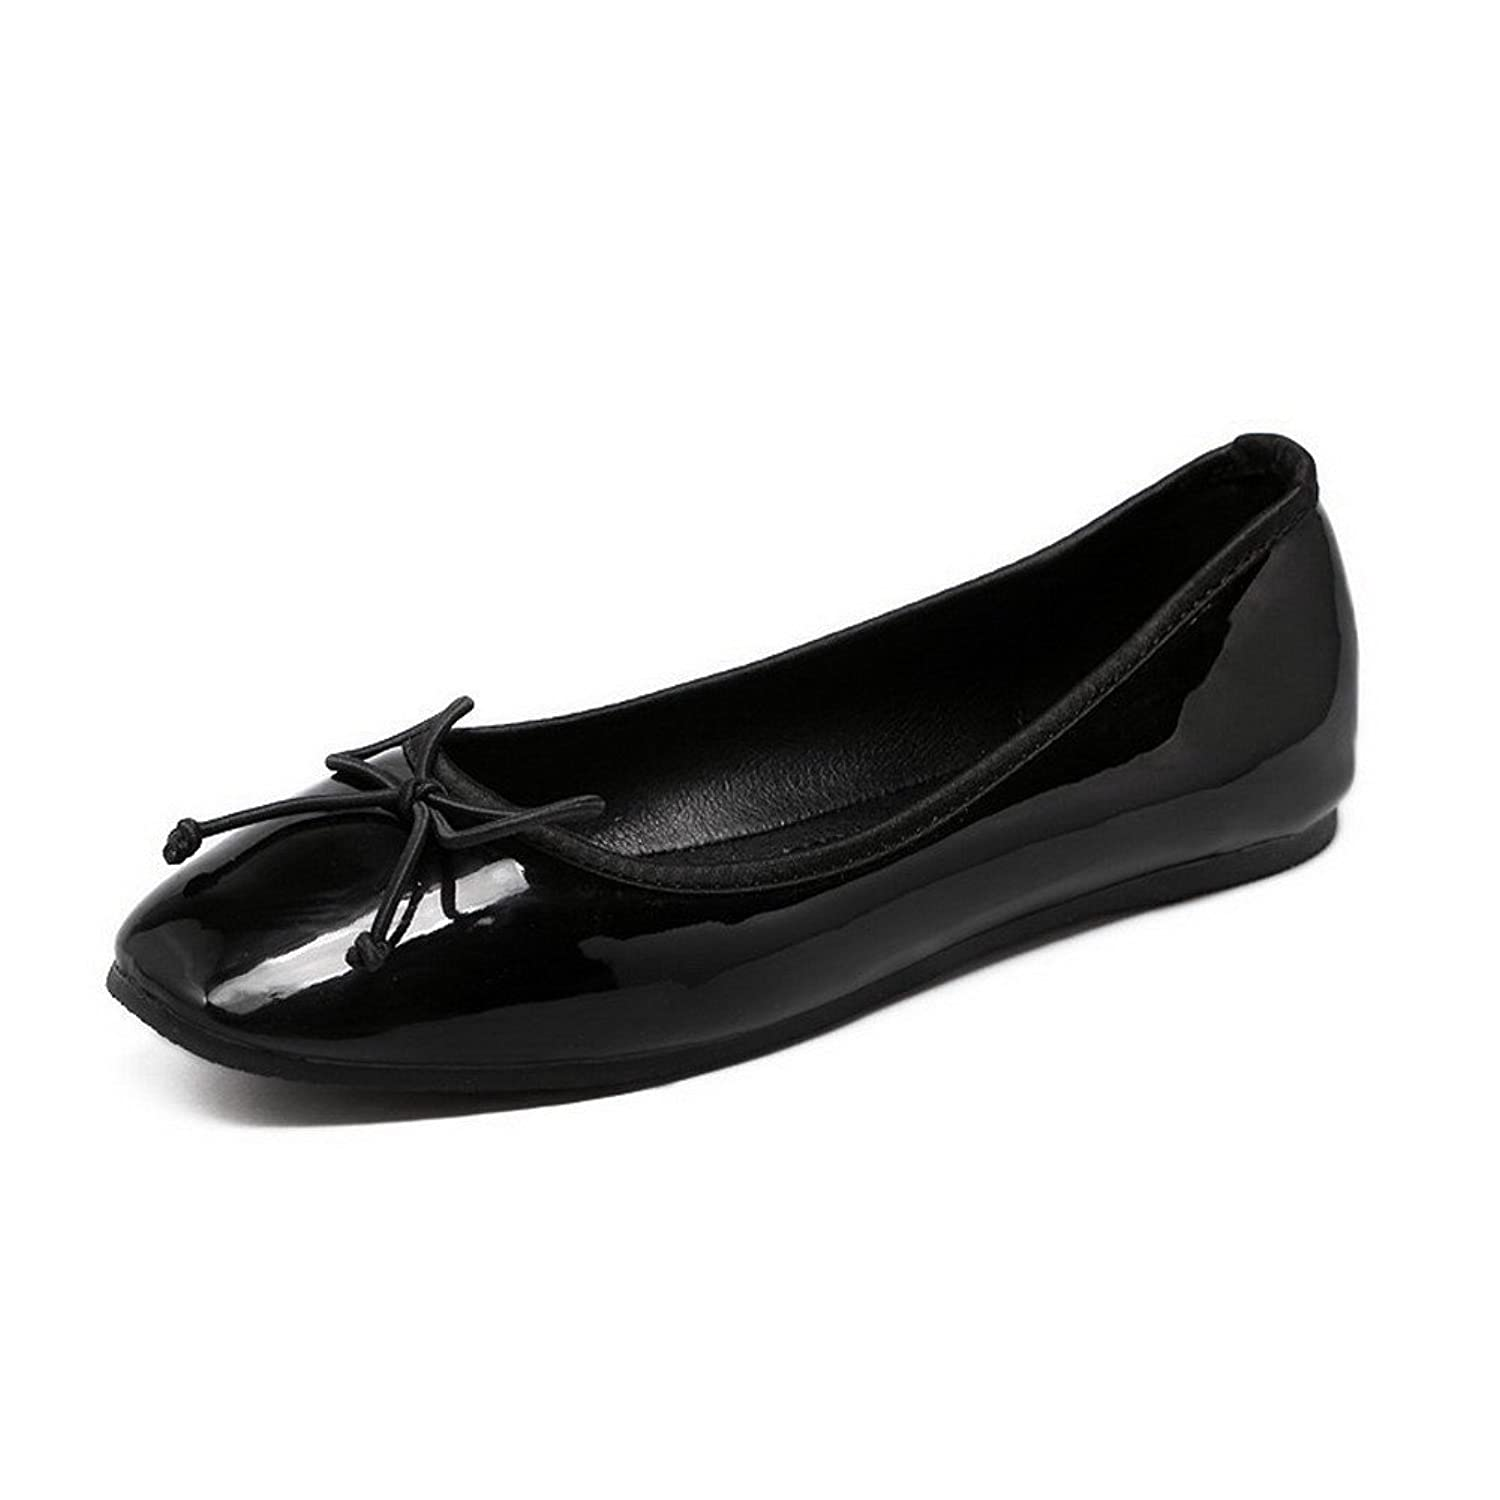 AalarDom Women's Patent Leather Square Closed Toe Pull-On Flats-Shoes with Bows and Knot